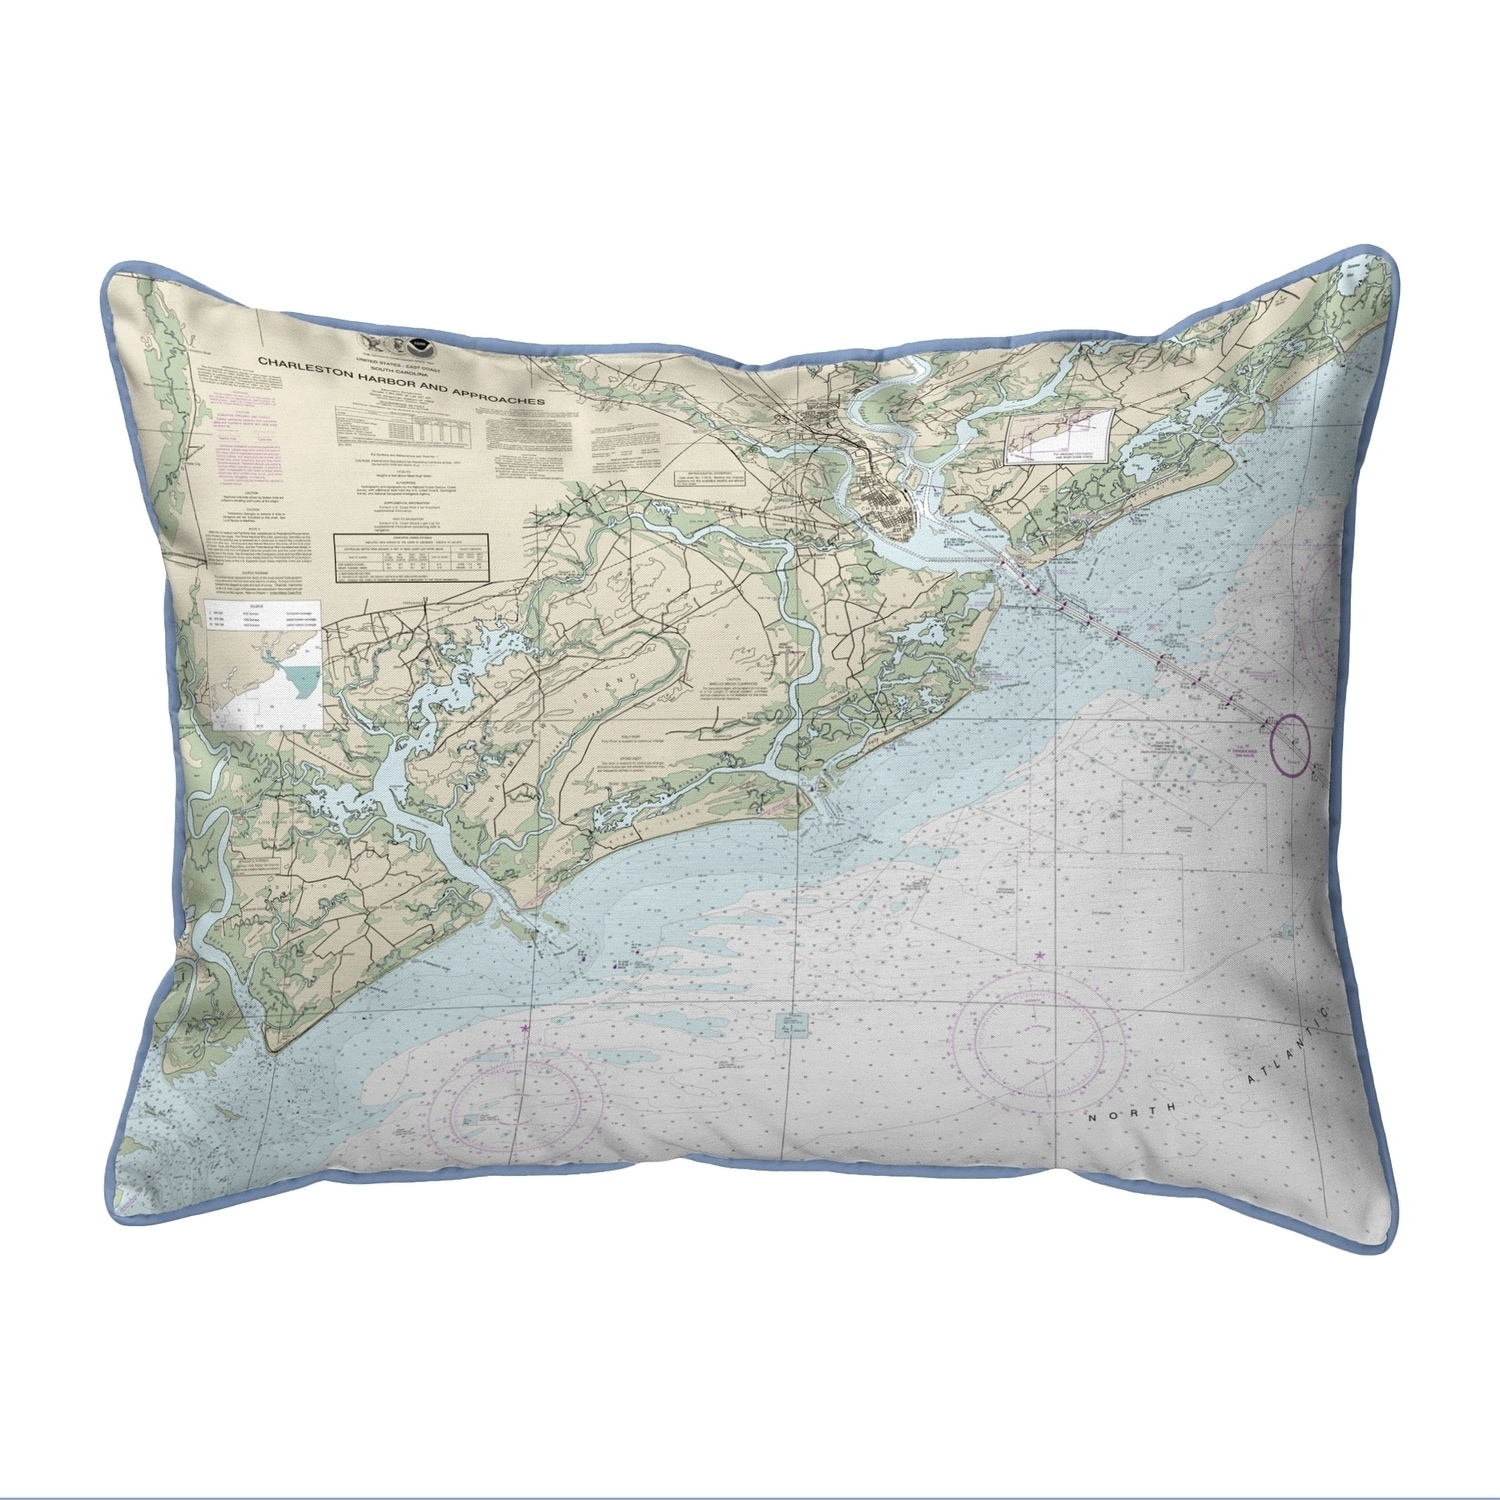 Charleston Harbor And Approaches Sc Nautical Map Large Corded Indoor Outdoor Pillow 16x20 Overstock 22878127